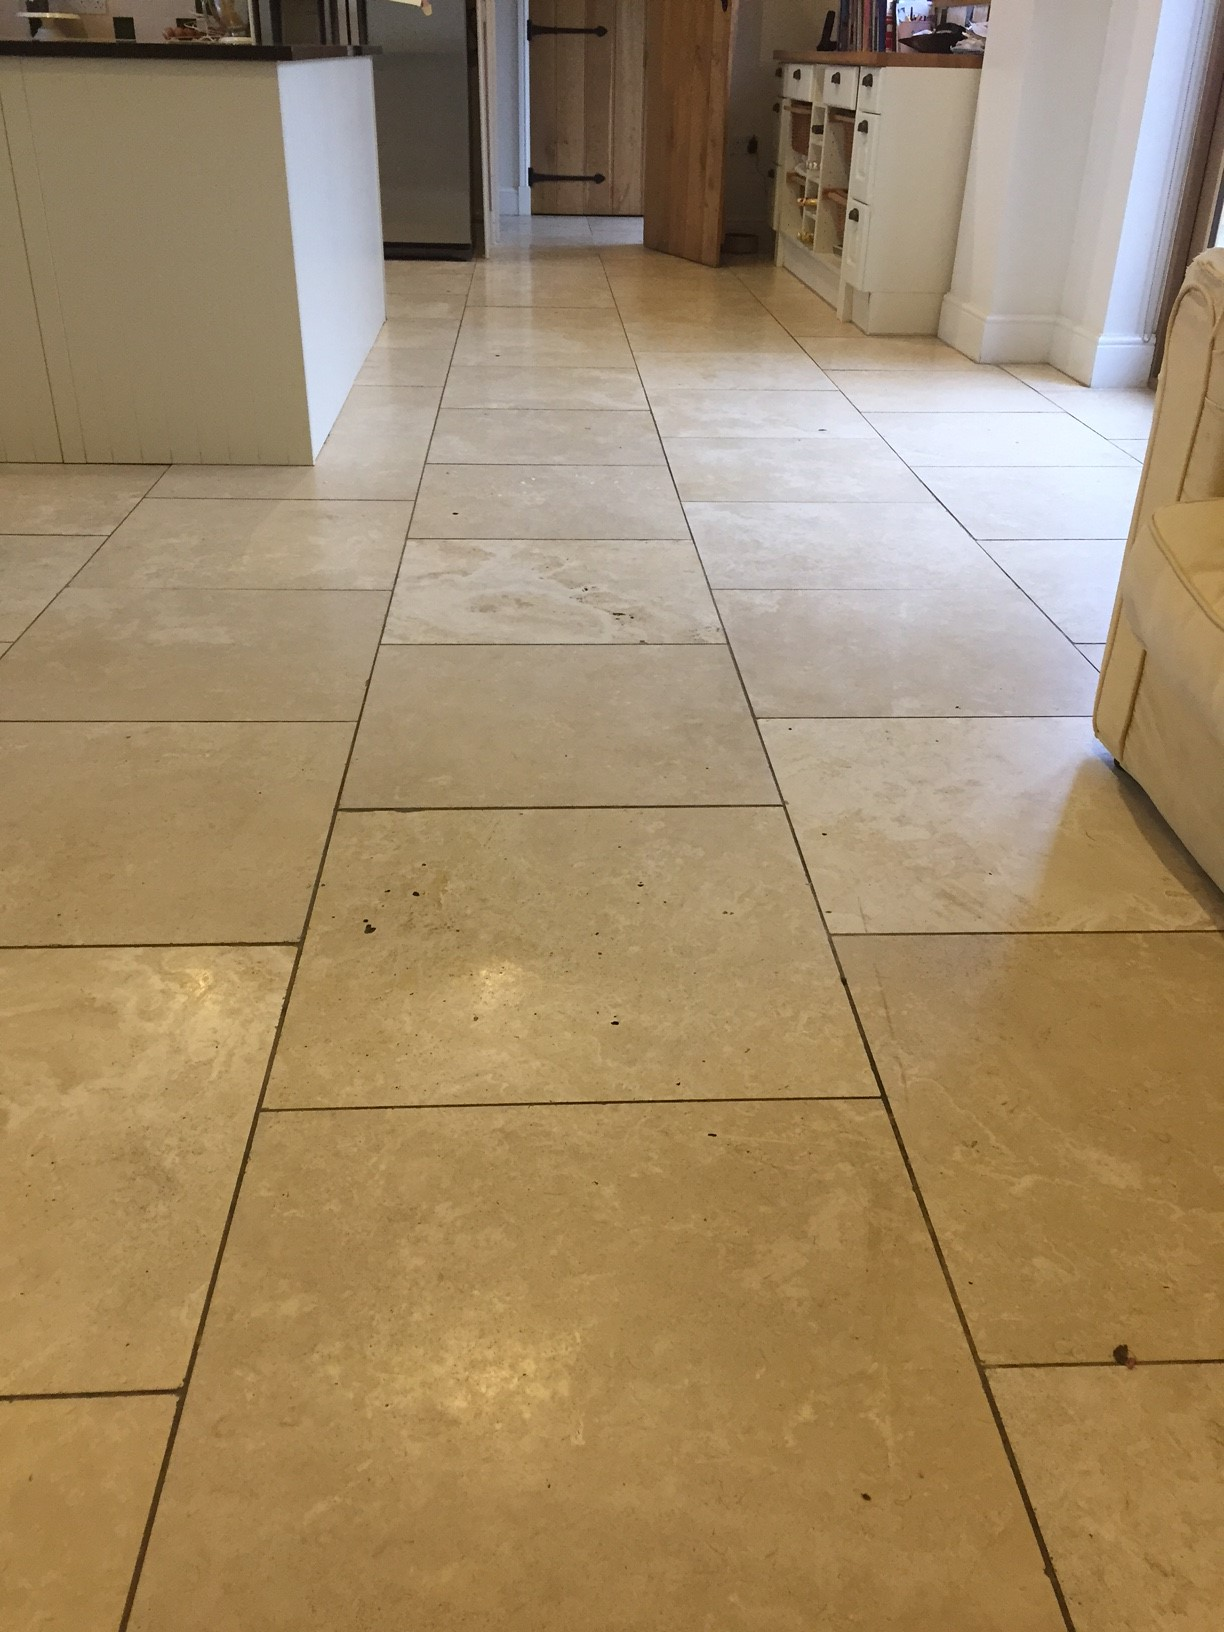 Travertine Kitchen Floor Tiles Lutterworth Before Polishing